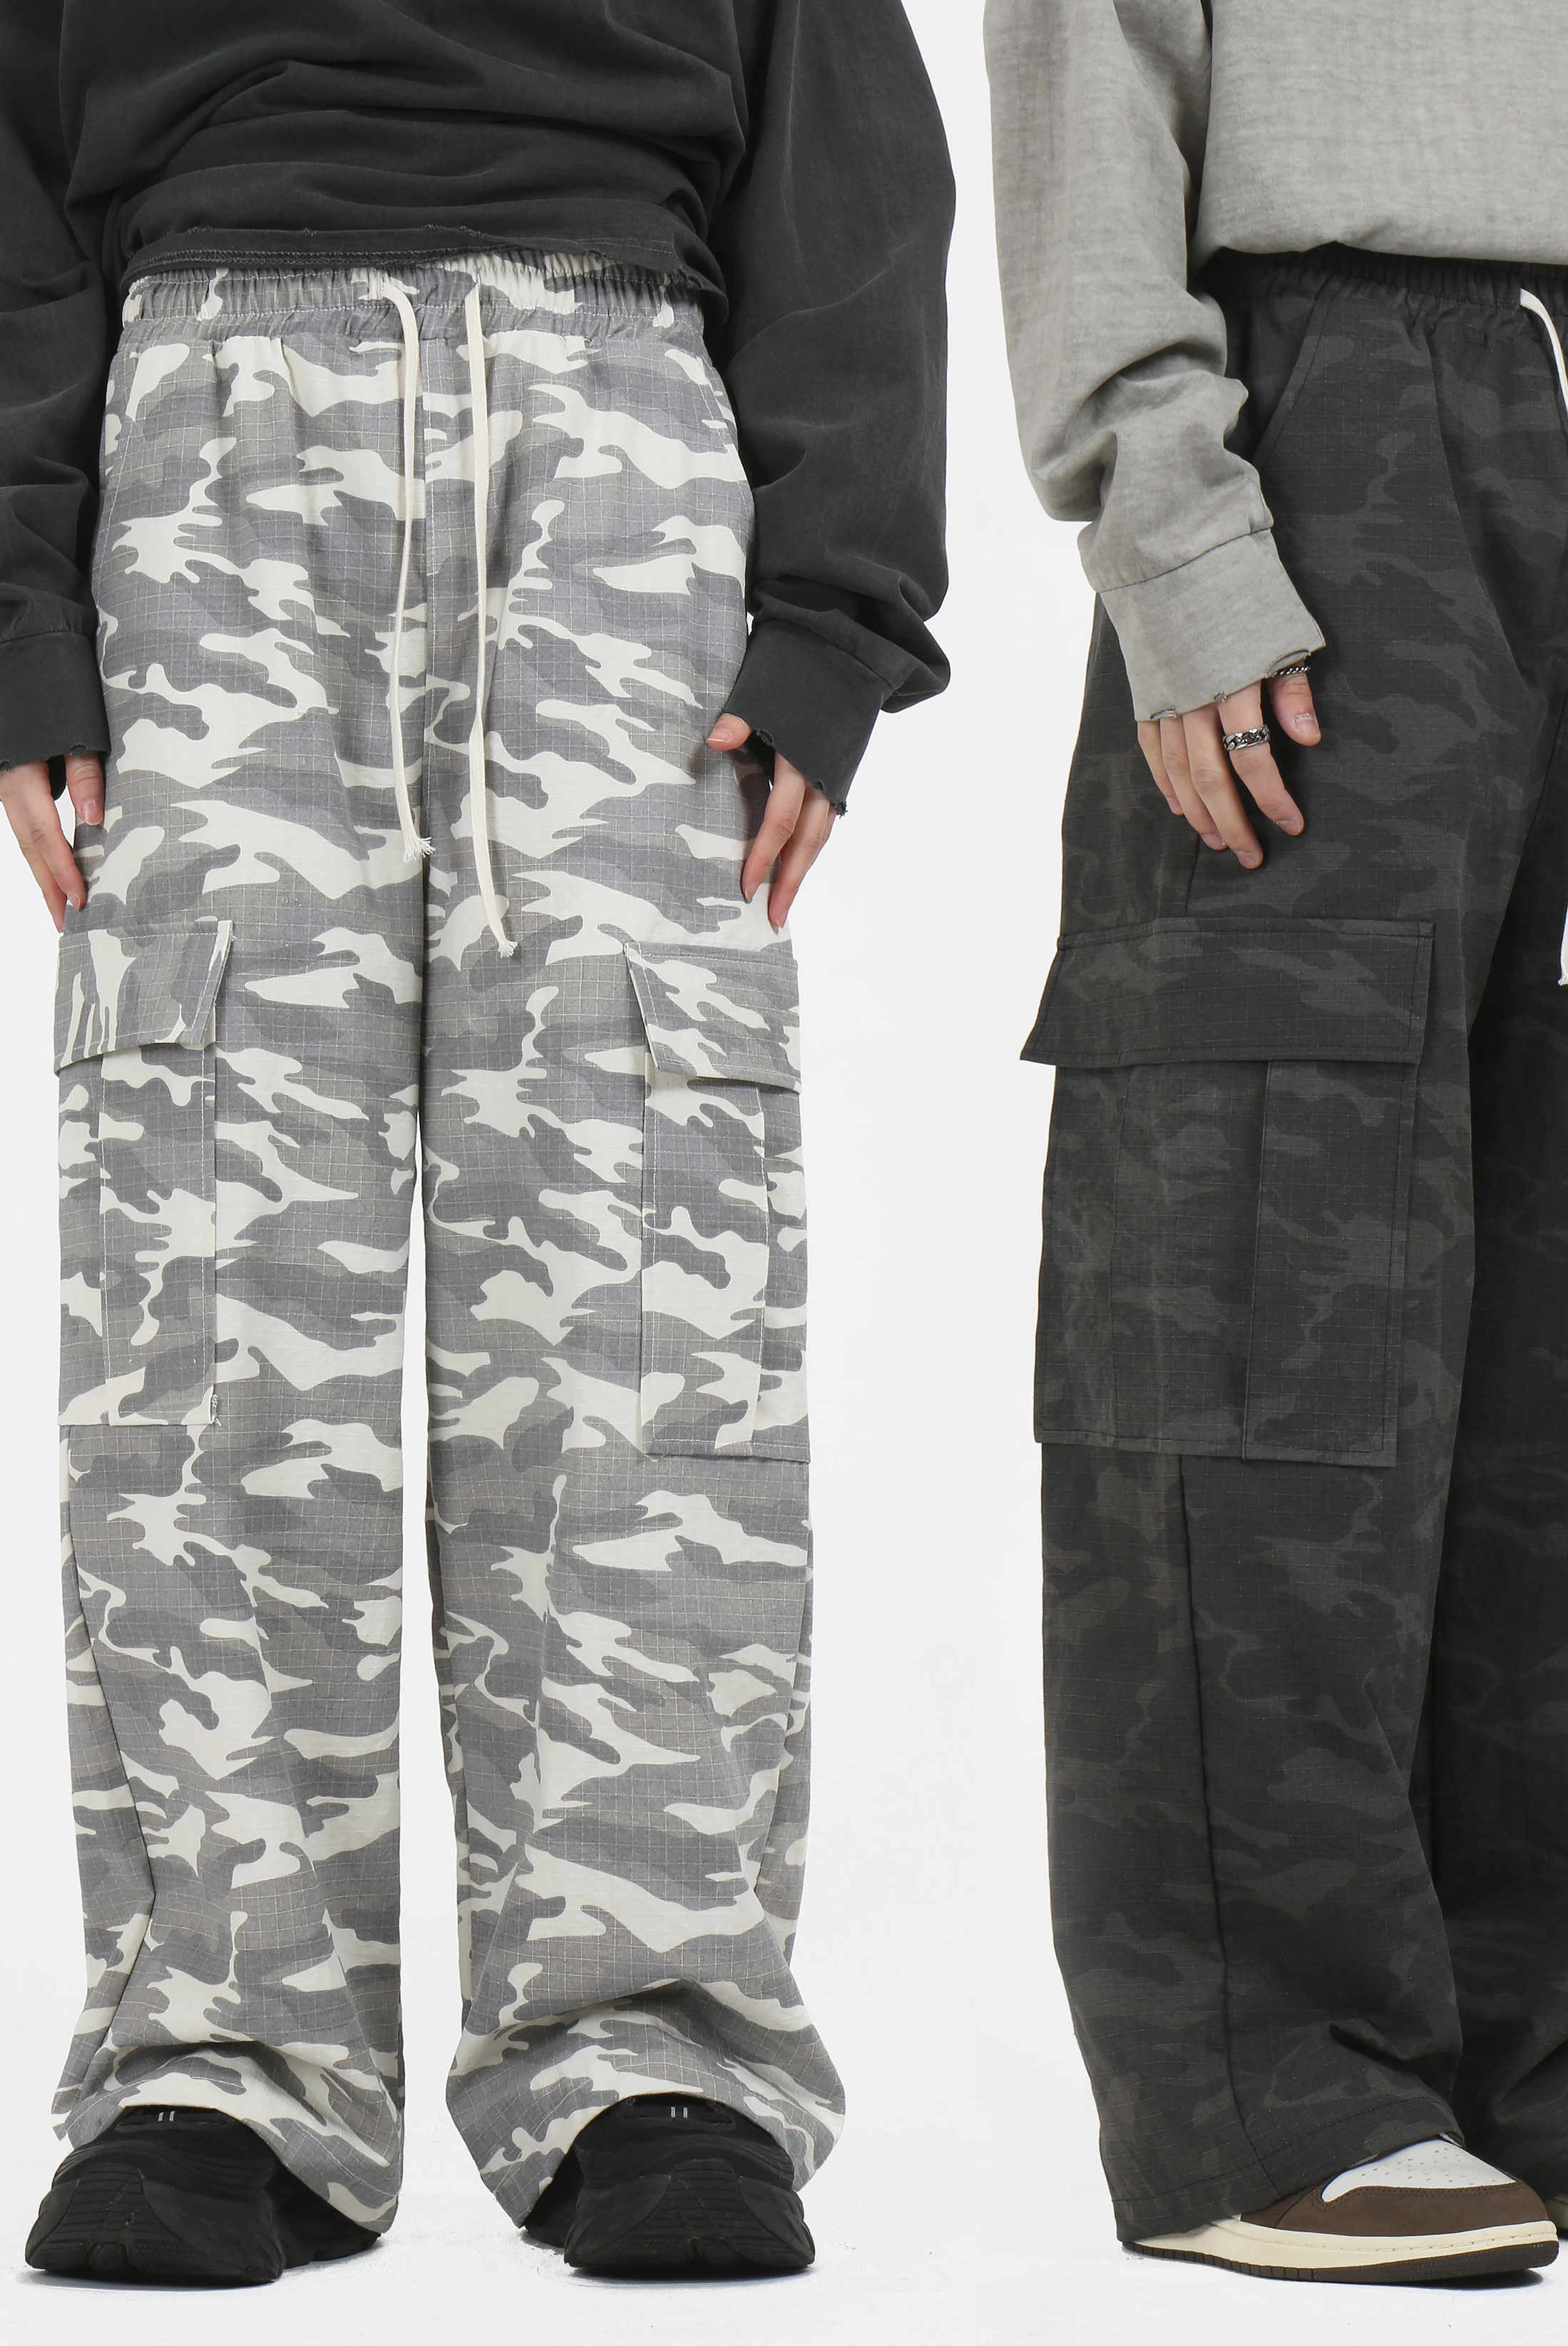 Digital Camouflage_Bending Pants